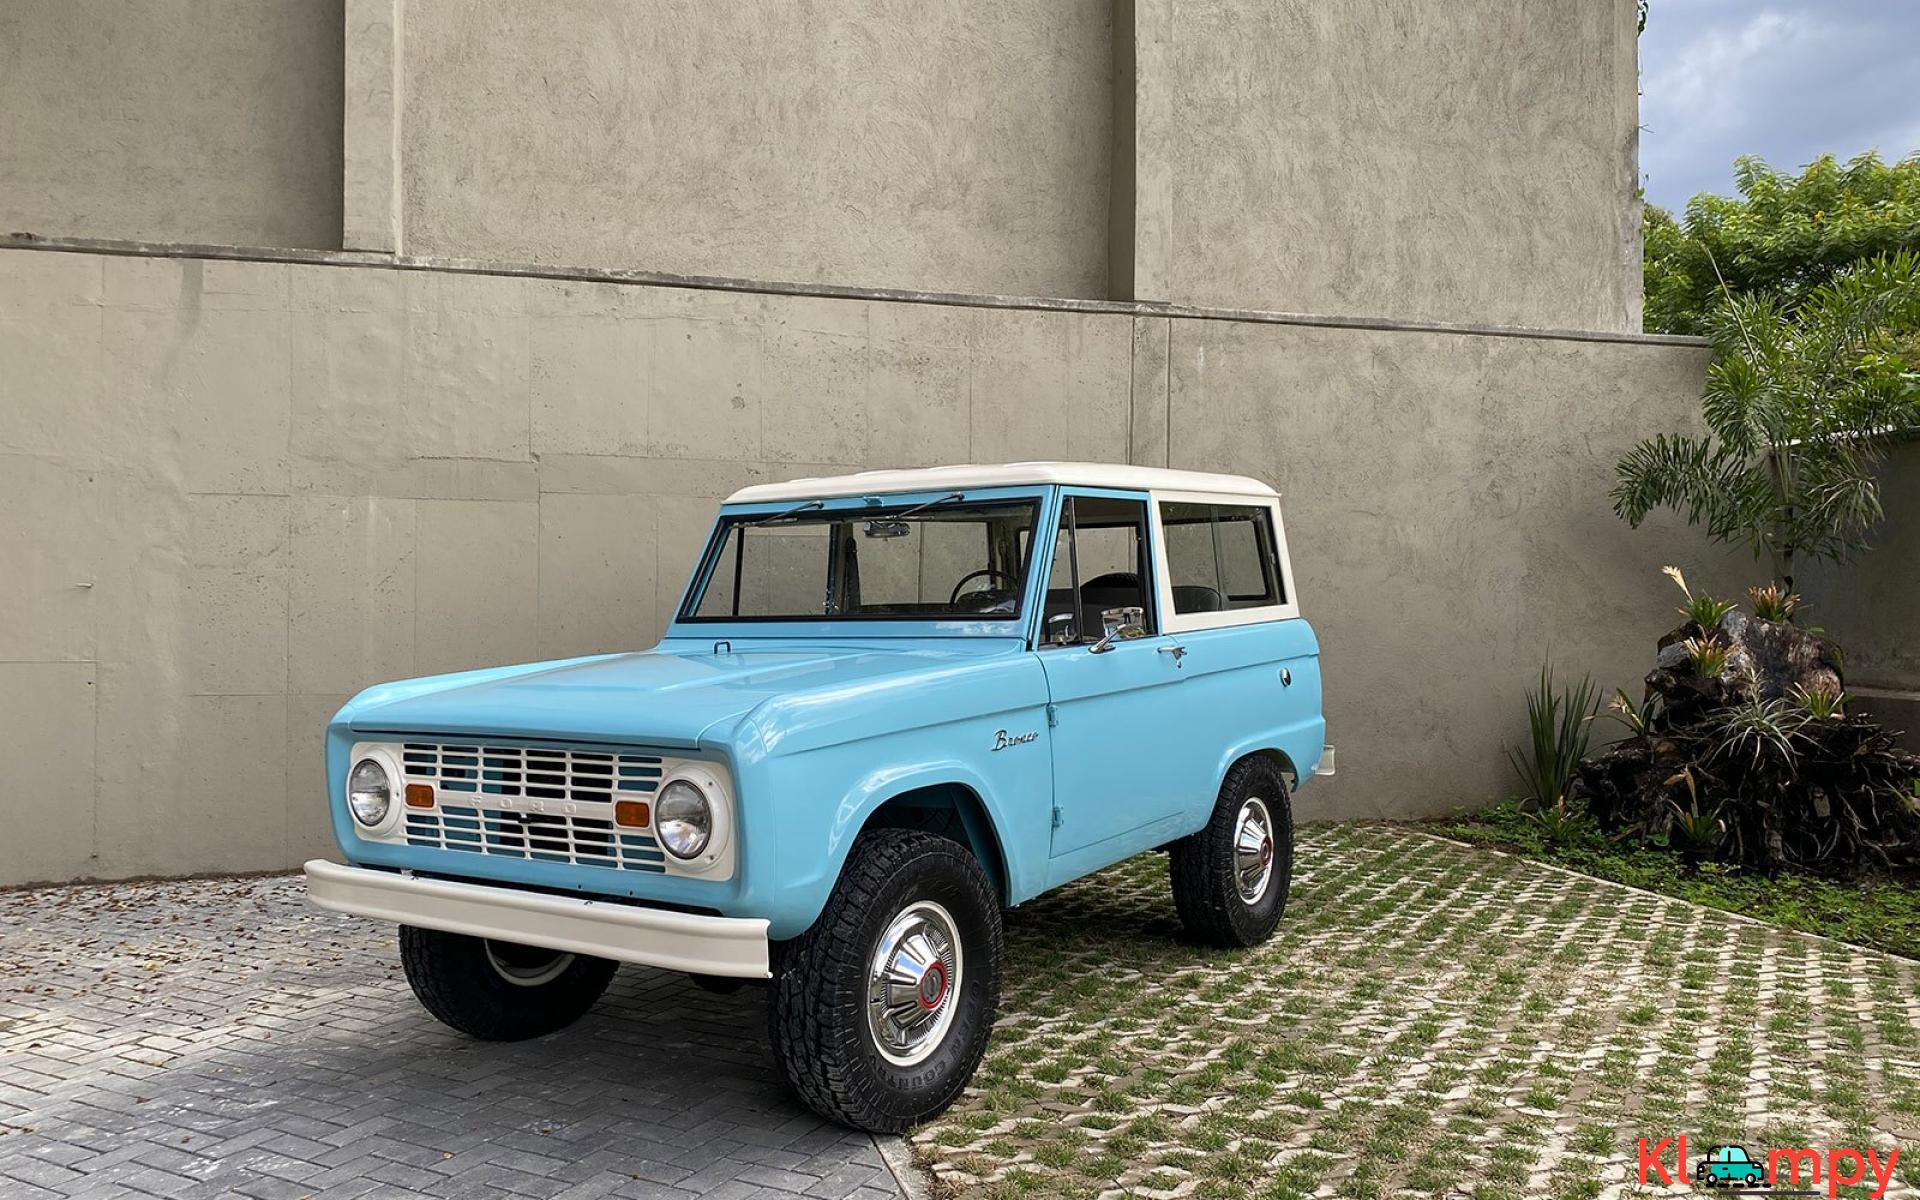 1967 Ford Bronco 170 Inline-Six - 9/21